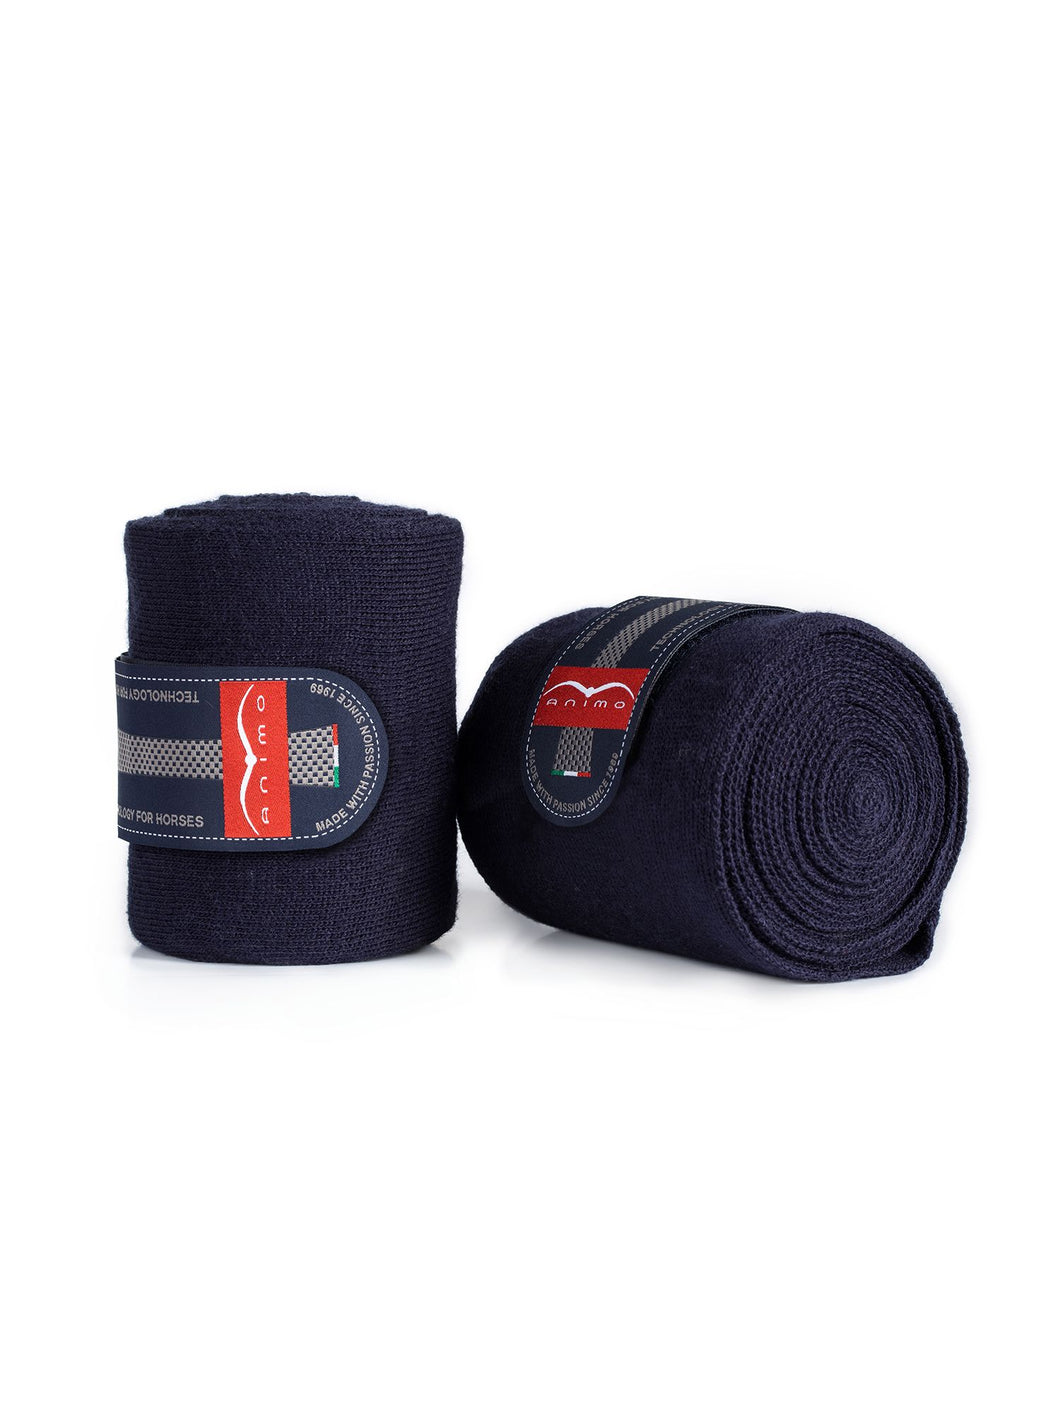 Web Set of 2 Bandages - Reform Sport Equestrian Clothing